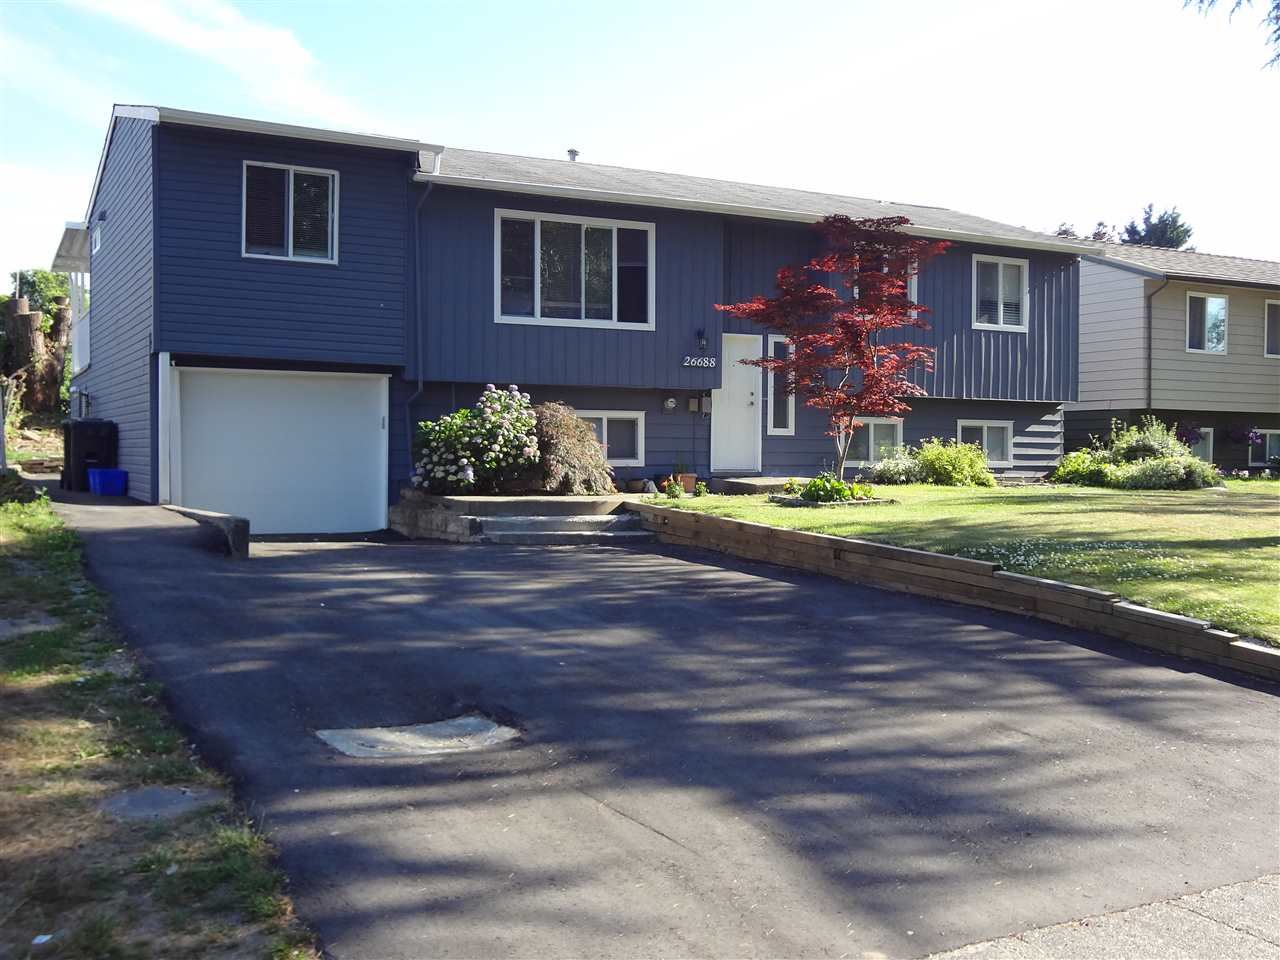 Detached at 26688 33 AVENUE, Langley, British Columbia. Image 1